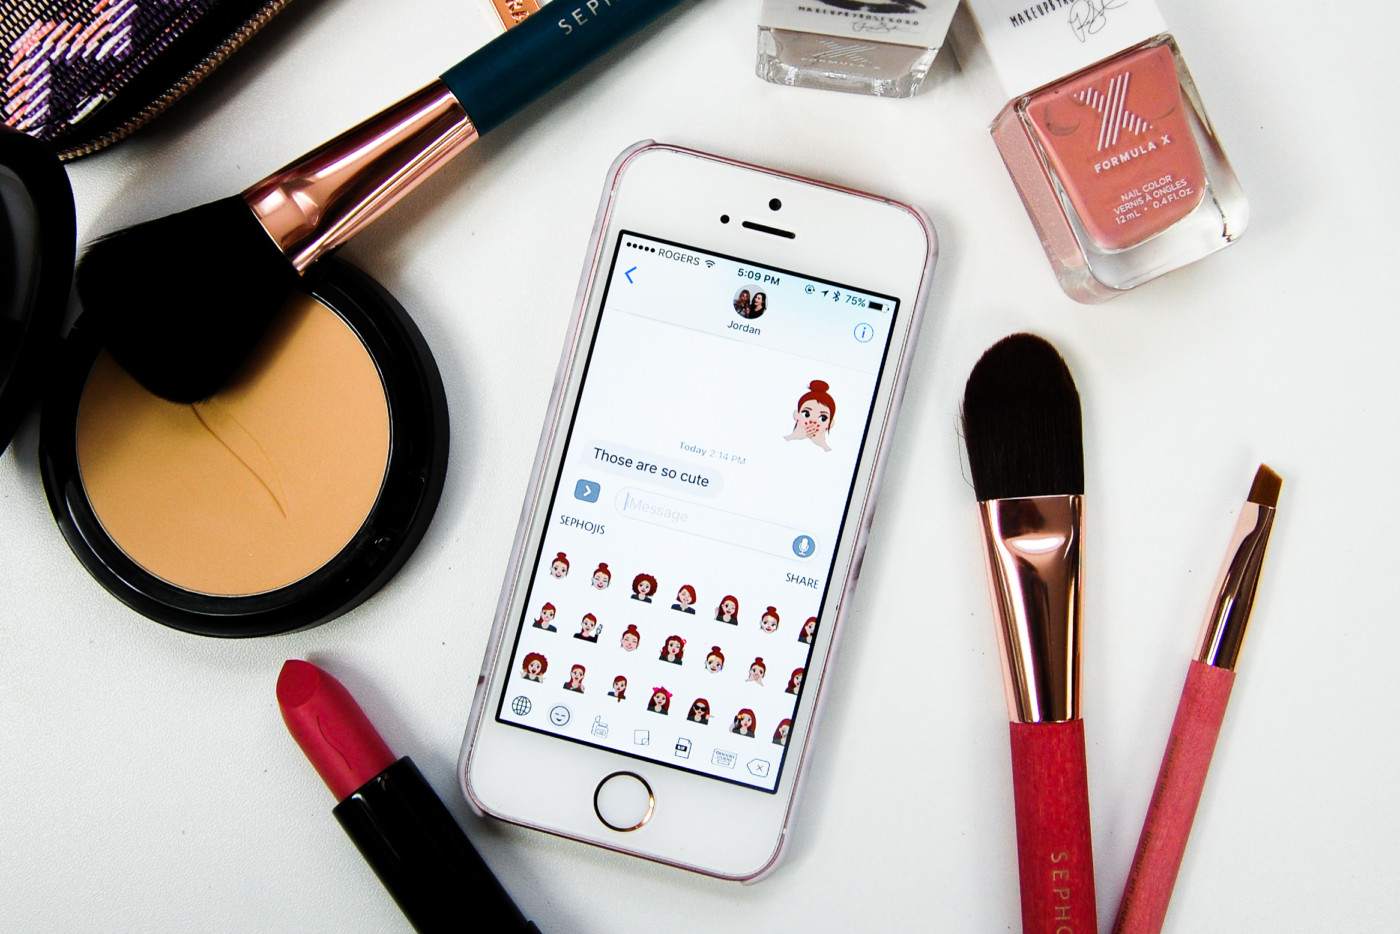 The 5 Beauty Messaging Apps To Download Now